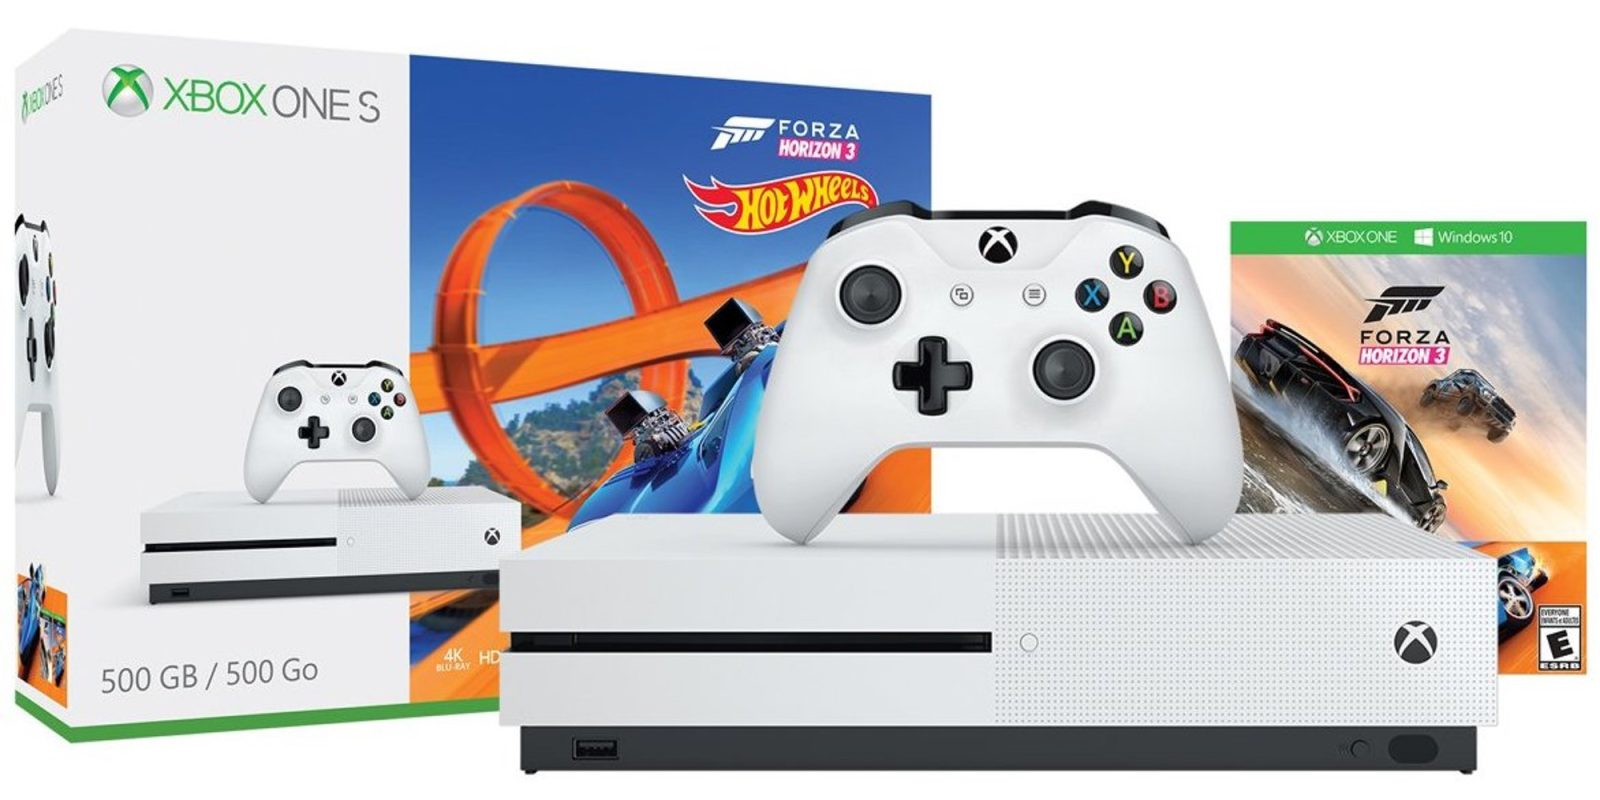 Xbox One S Forza Hot Wheels Bundle + Madden NFL 20, more at $150+ off